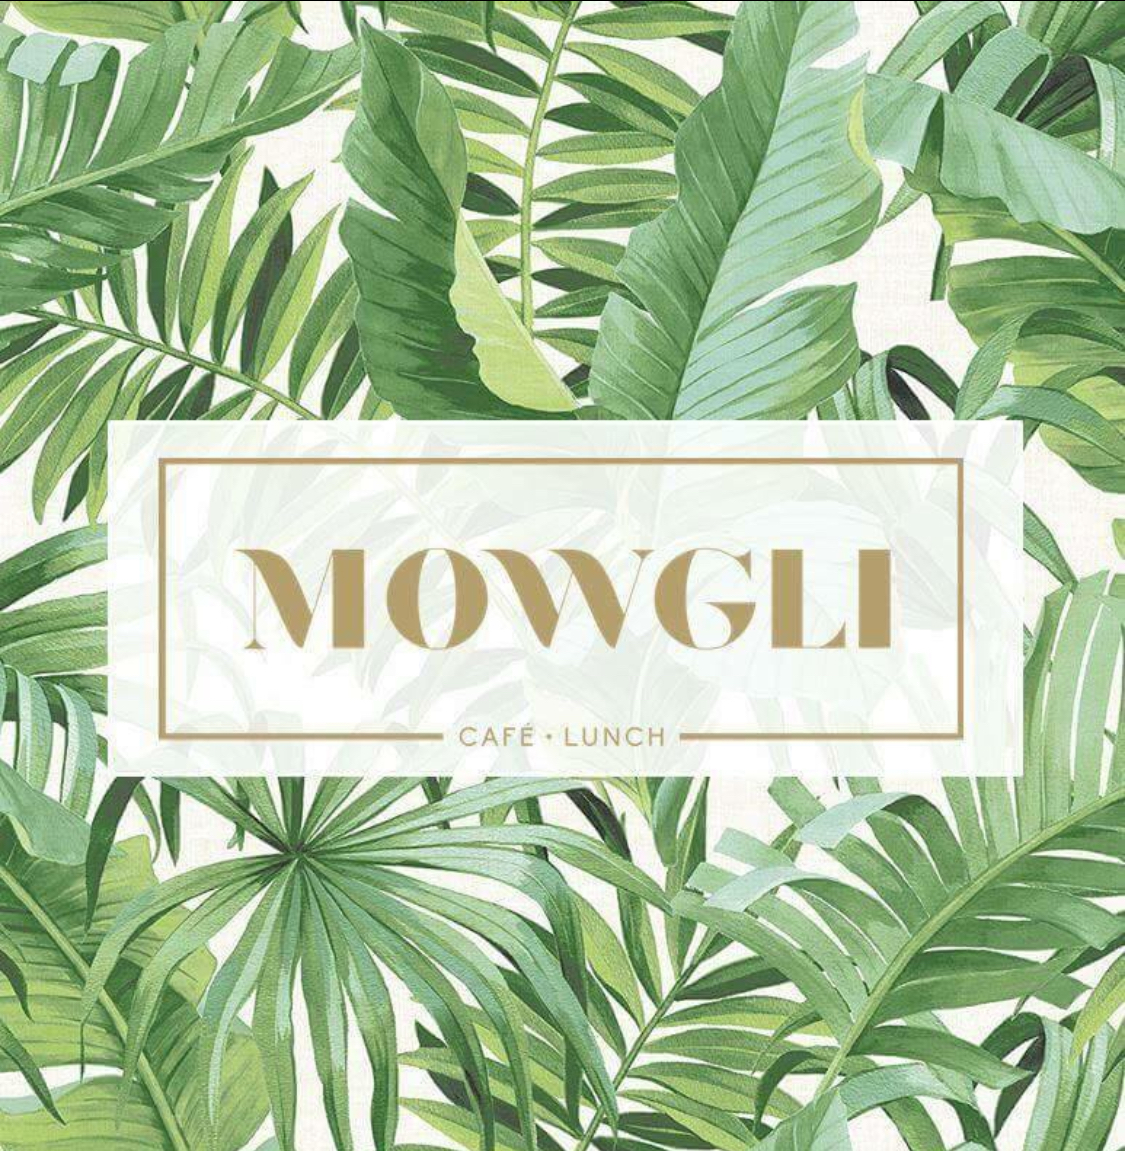 MOWGLI CAFE LUNCH